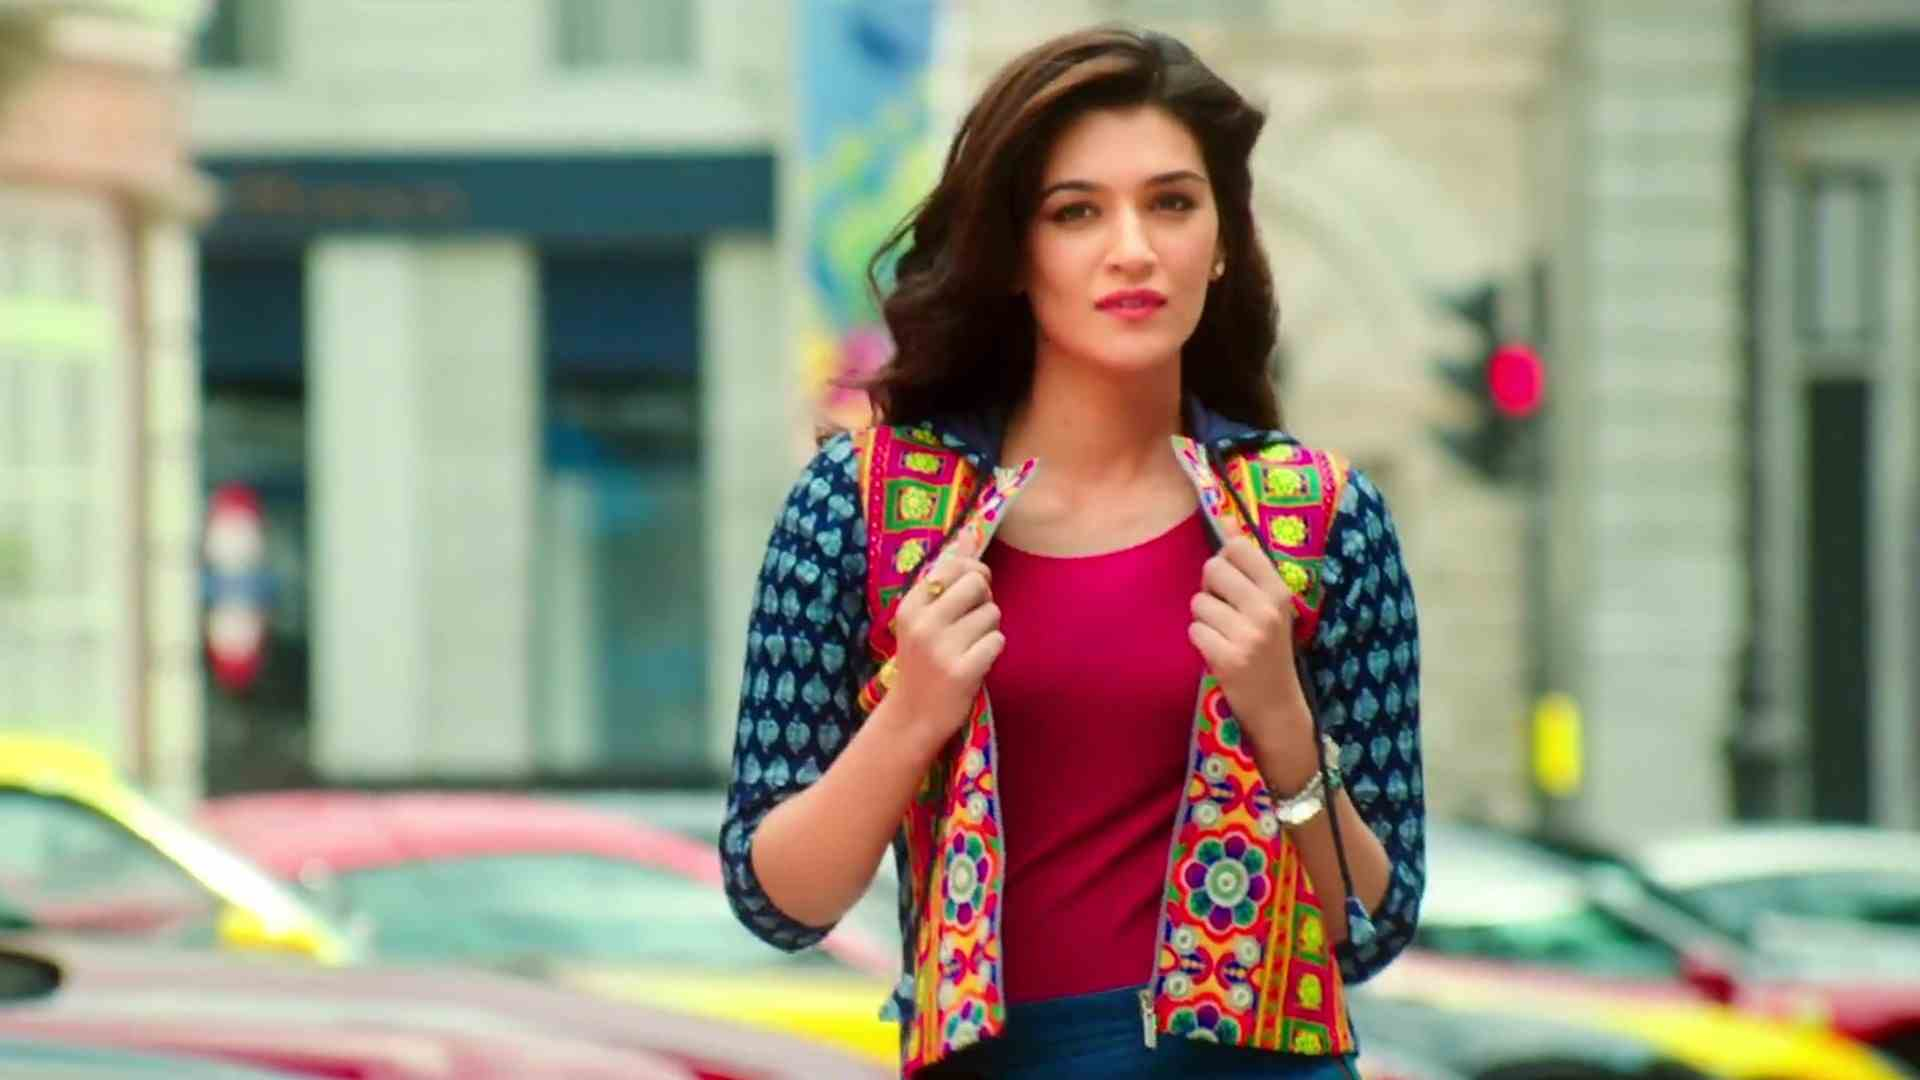 Kriti Sanon Hd Images And Wallpapers And Unknown Facts: Kriti Sanon To Star Opposite Akshay Kumar In 'Housefull 4